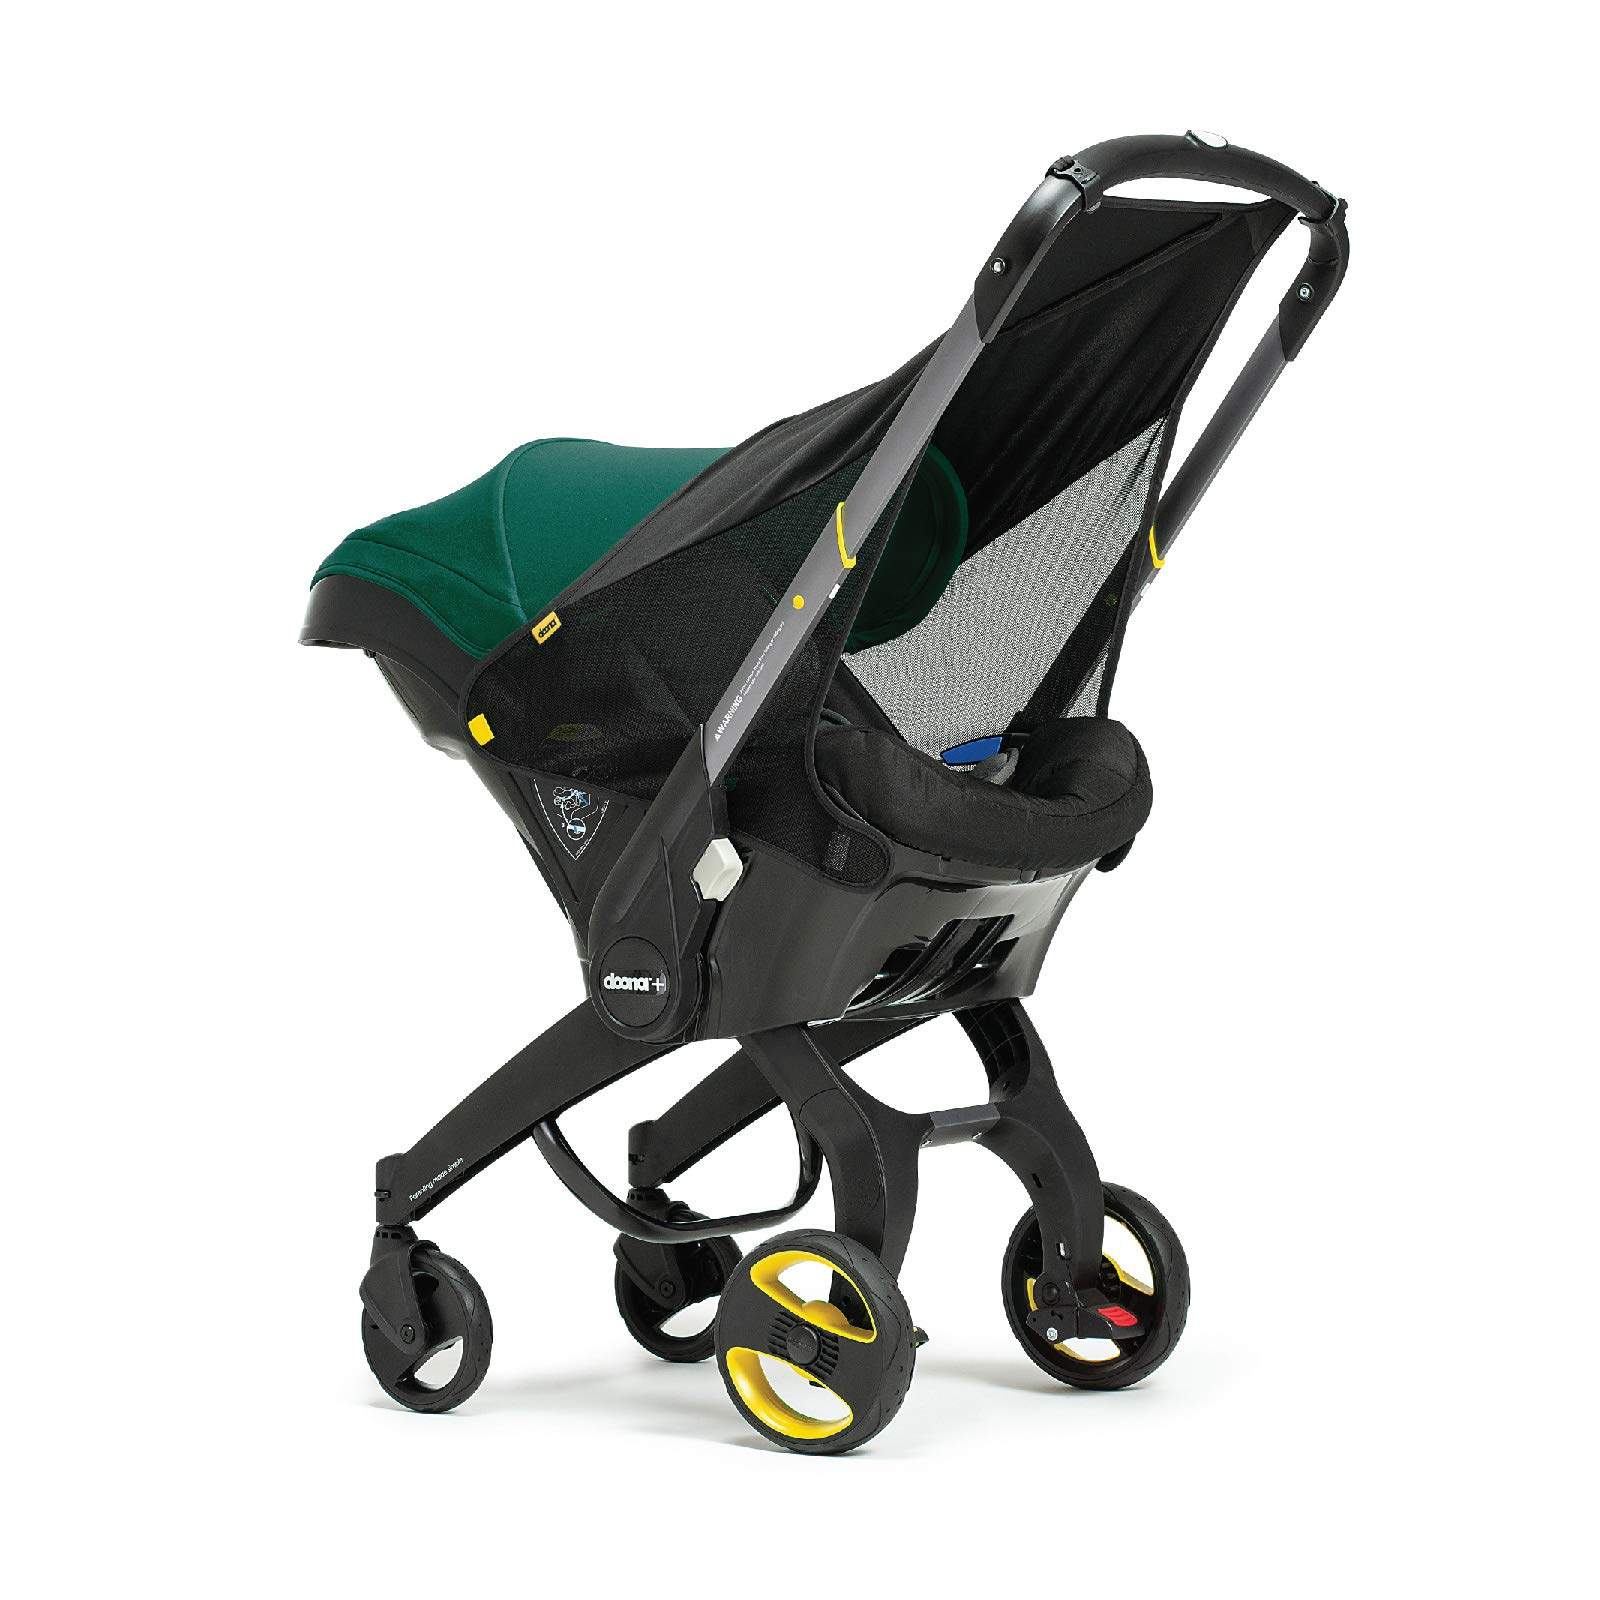 Doona Sunshade Extension - Compatible with Doona Car Seat & Stroller